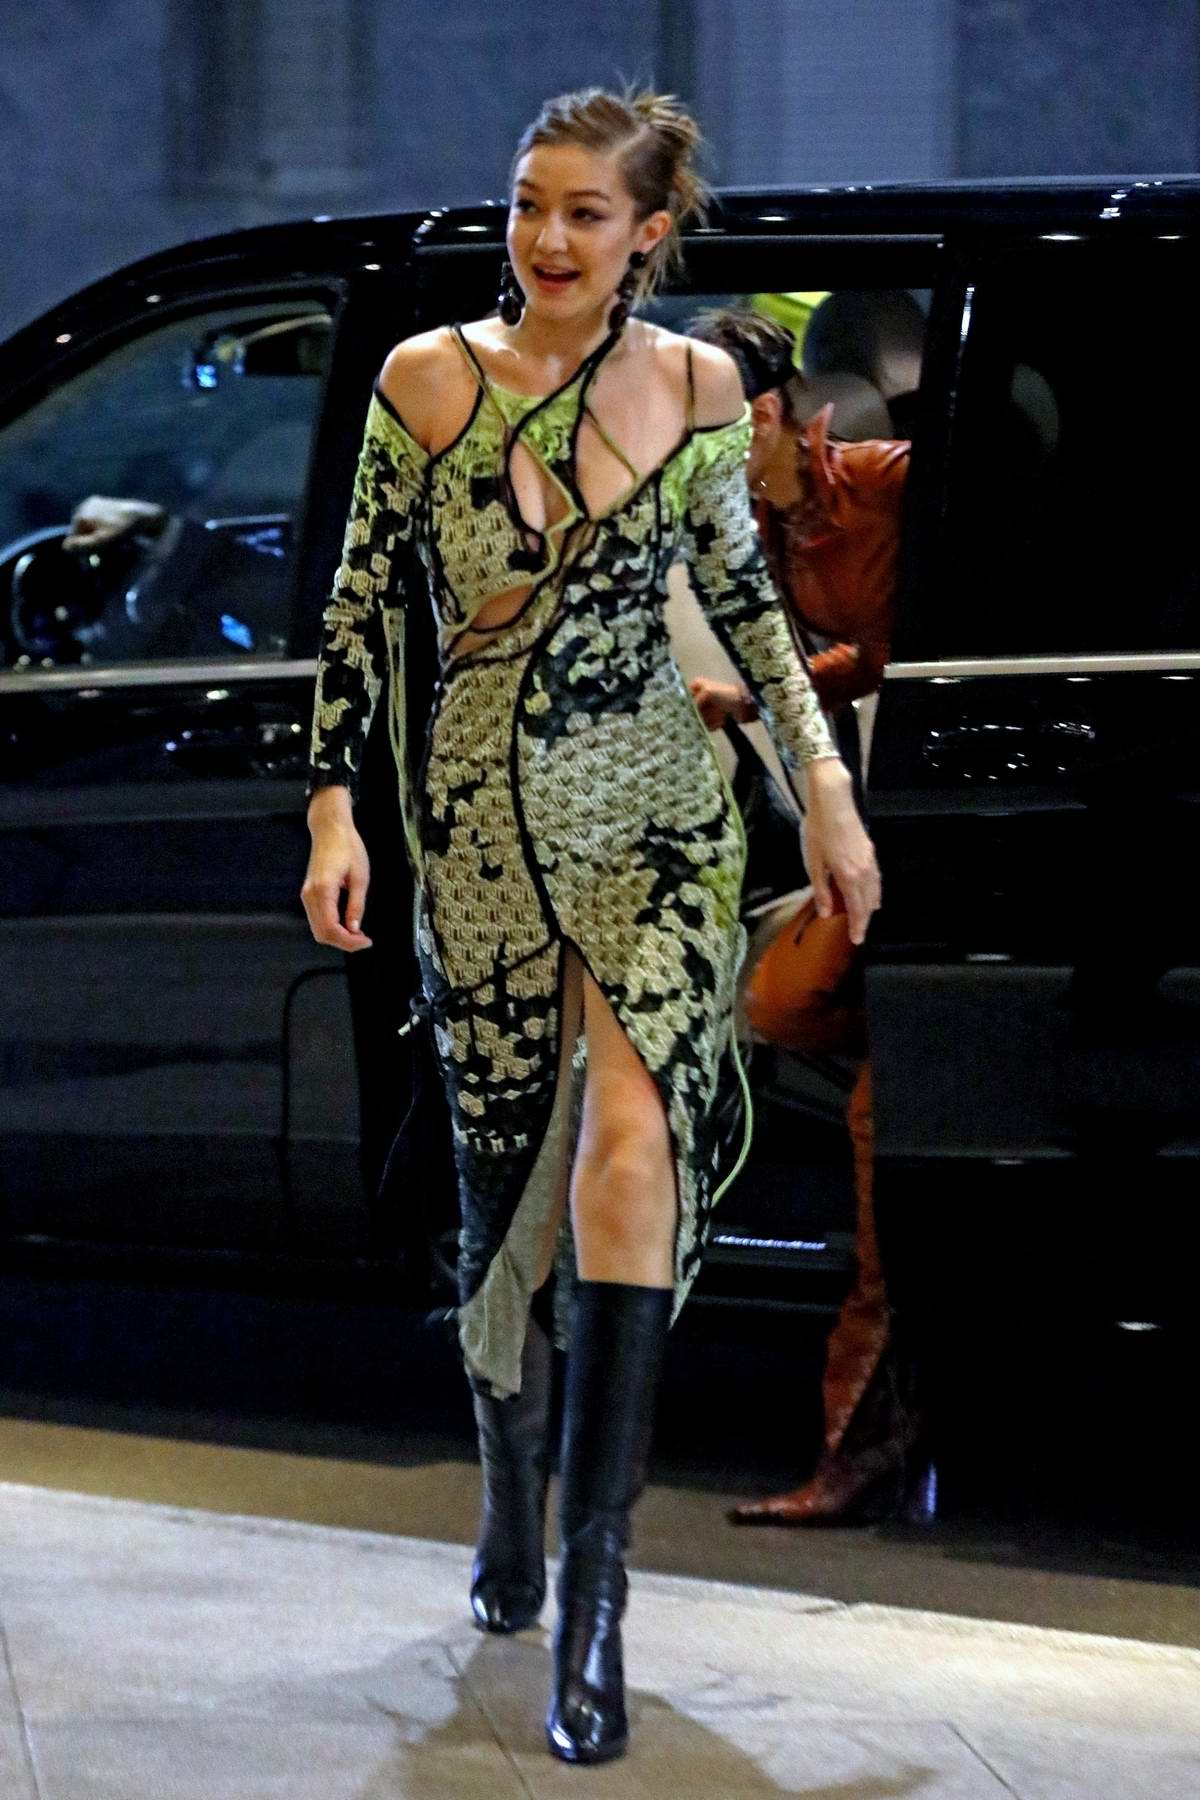 Gigi Hadid seen heading to the Versace after-party during the Milan Fashion Week 2020 in Milan, Italy